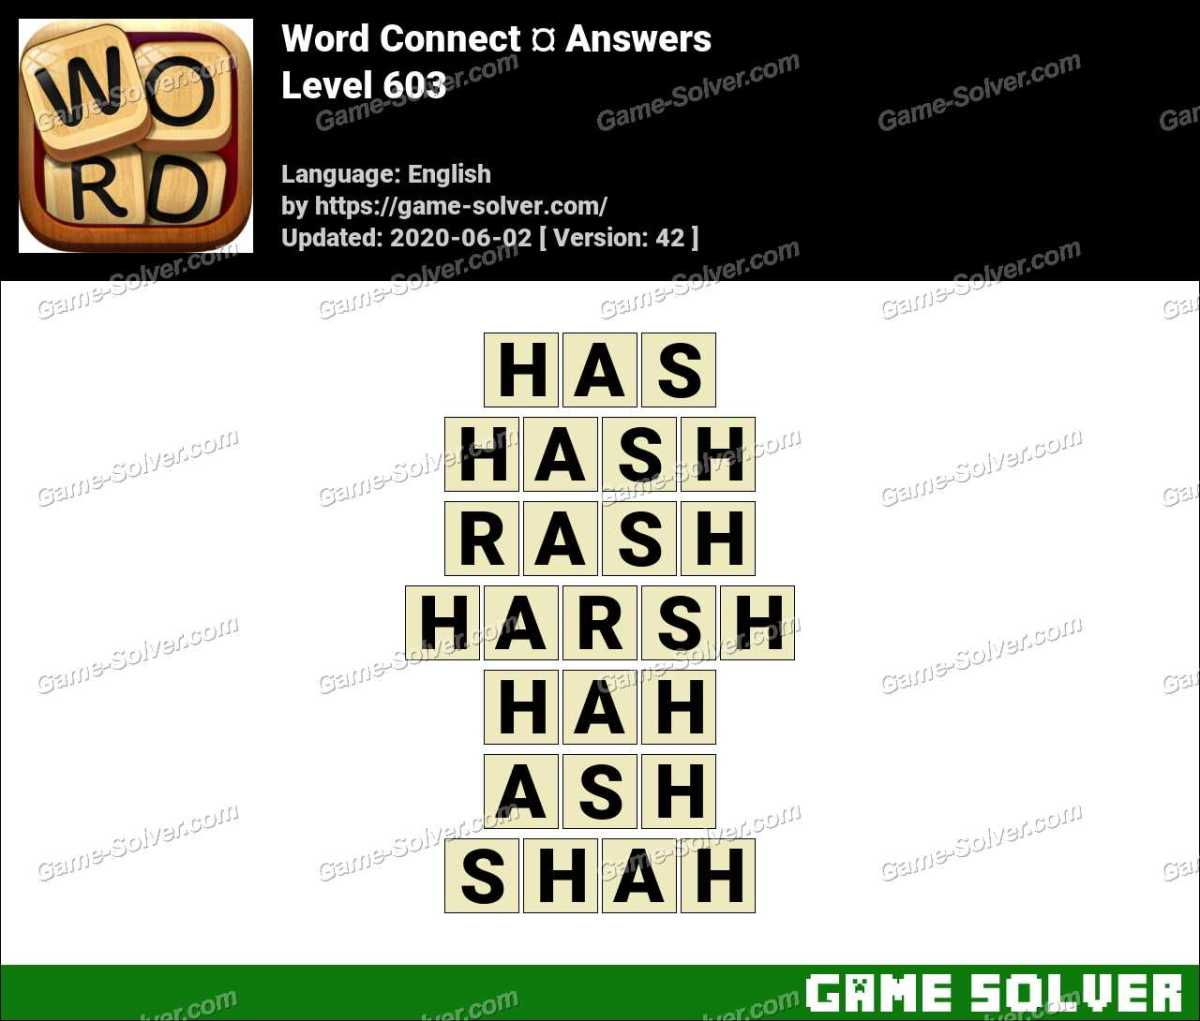 Word Connect Level 603 Answers